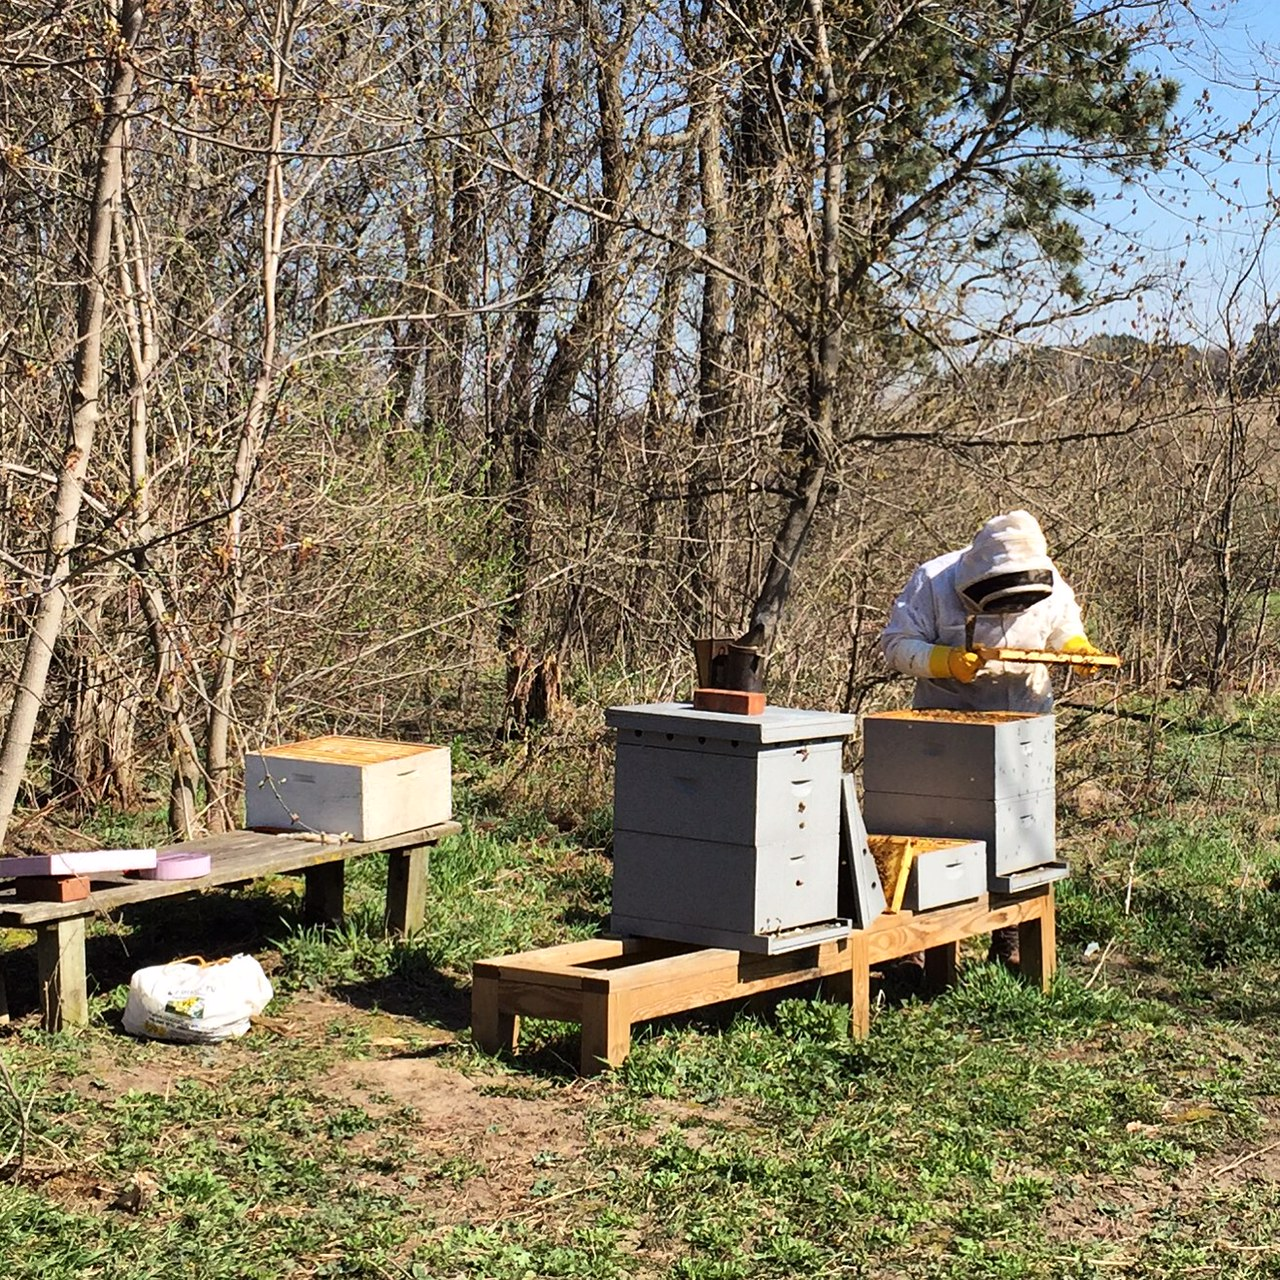 beehive first inspection in spring; Homestead monthly April 2016 | Homestead Monthly April 2016 {honey bee update, seed starting, and a new family member} | Whole-Fed Homestead